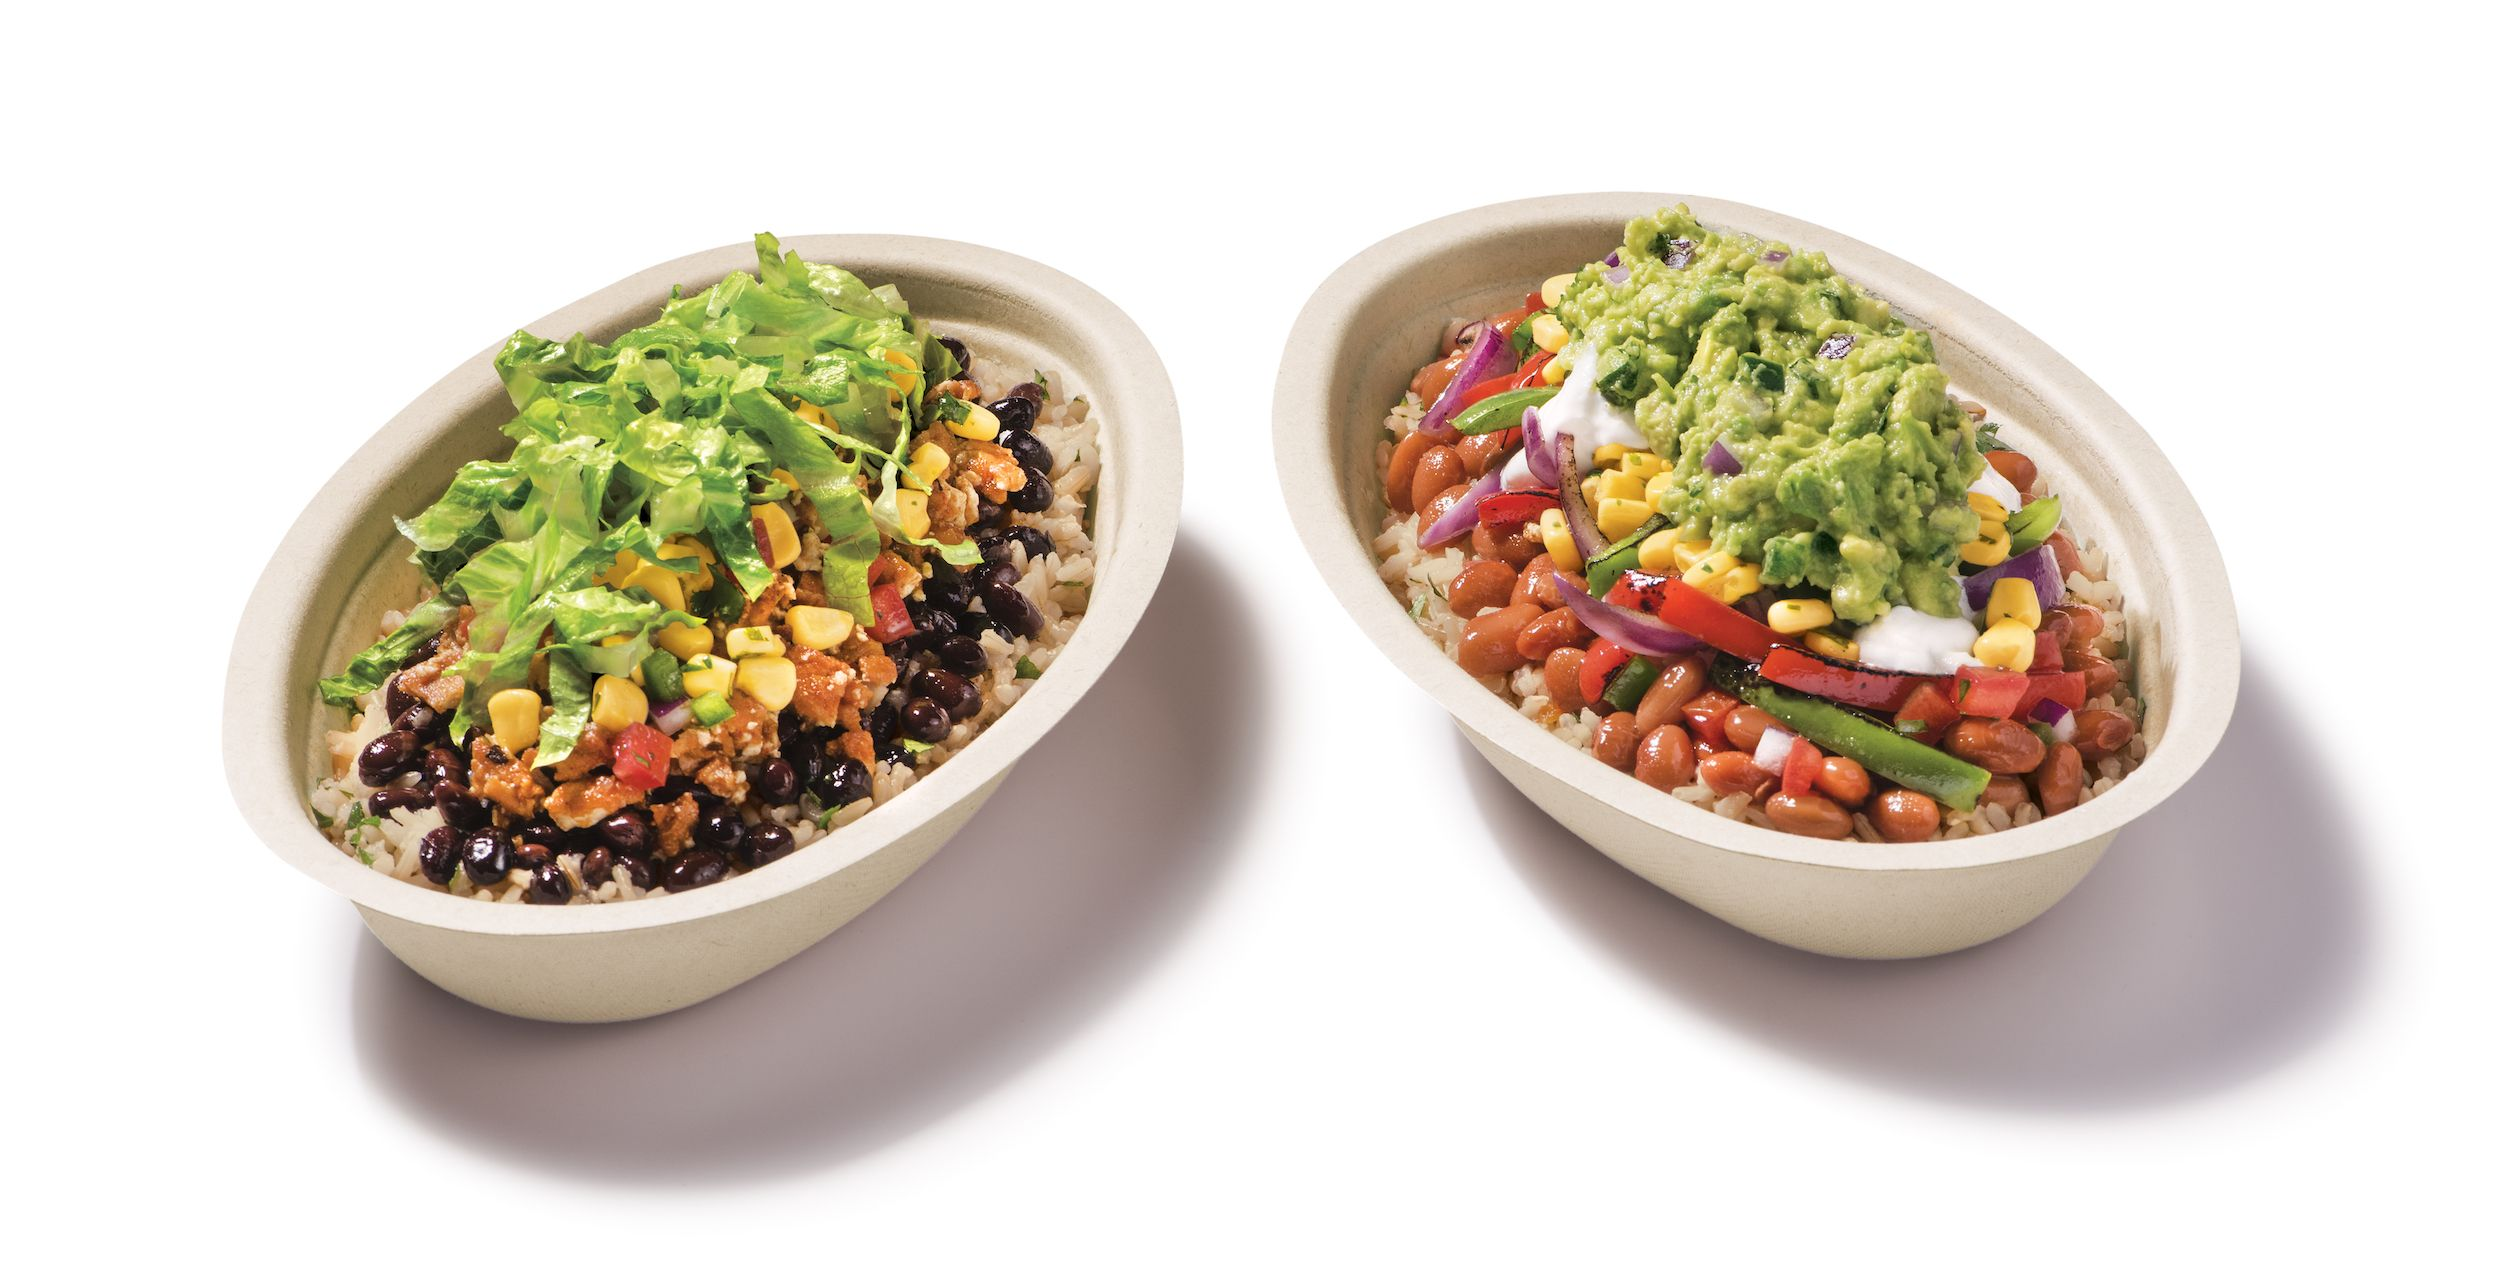 Chipotle Added Vegan And Vegetarian Meals To Its Lifestyle Bowl Options